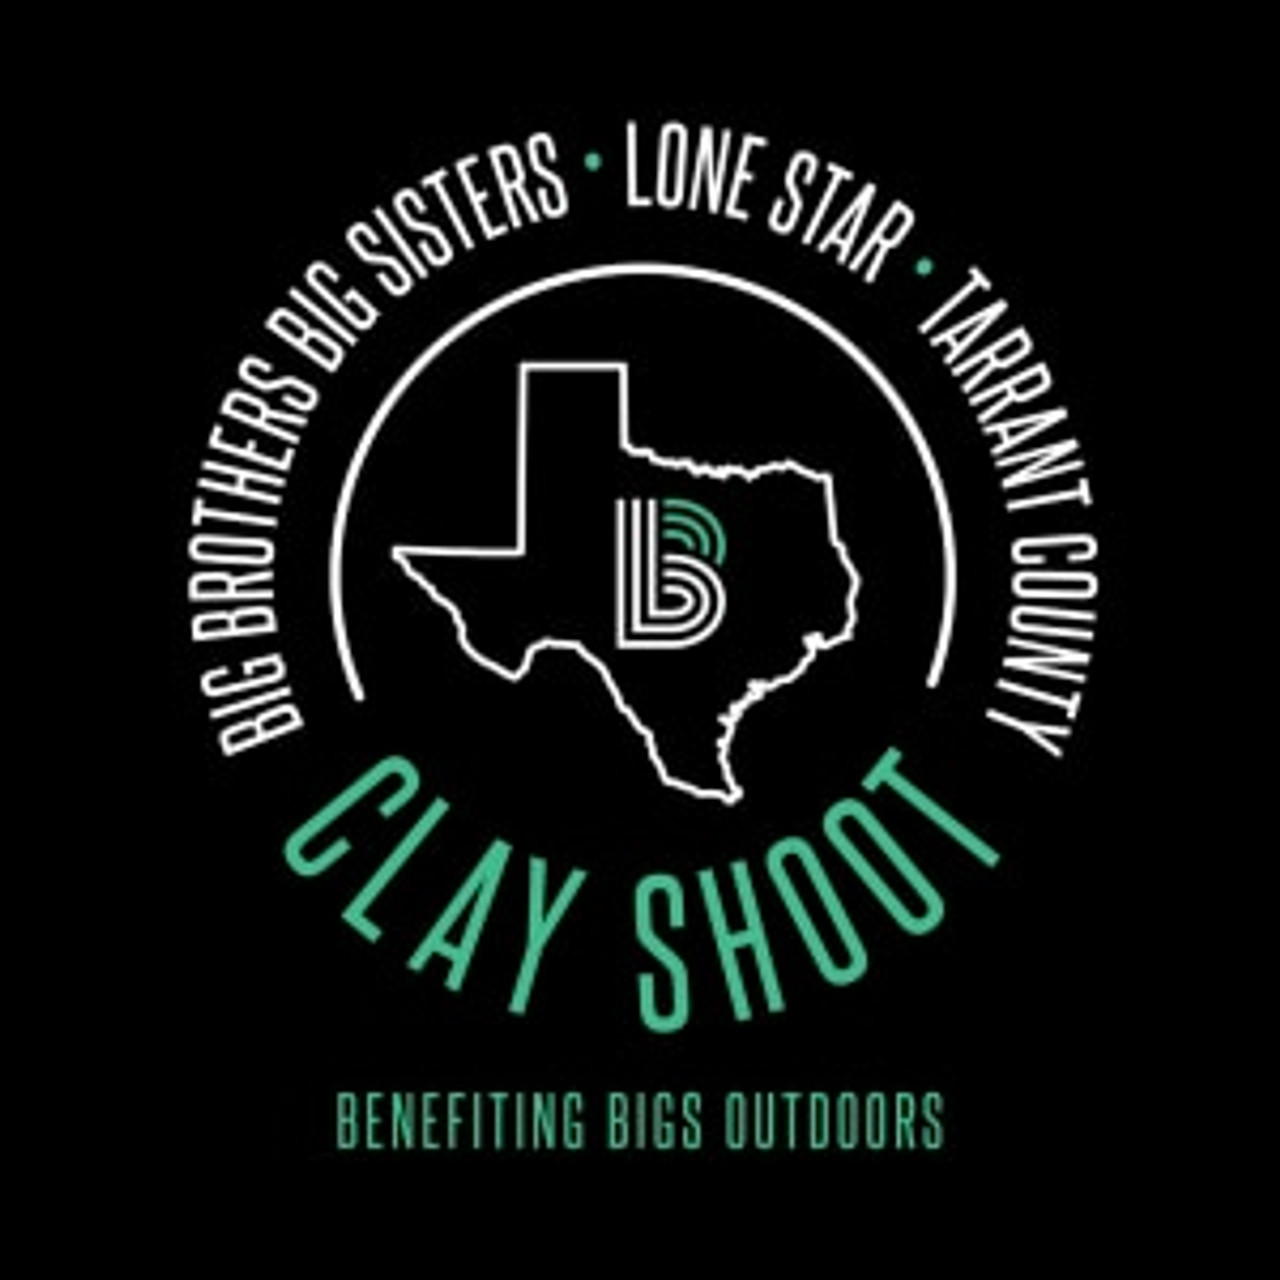 Big Brothers - Big Sisters Fort Worth Clay Shoot - August 24, 2019